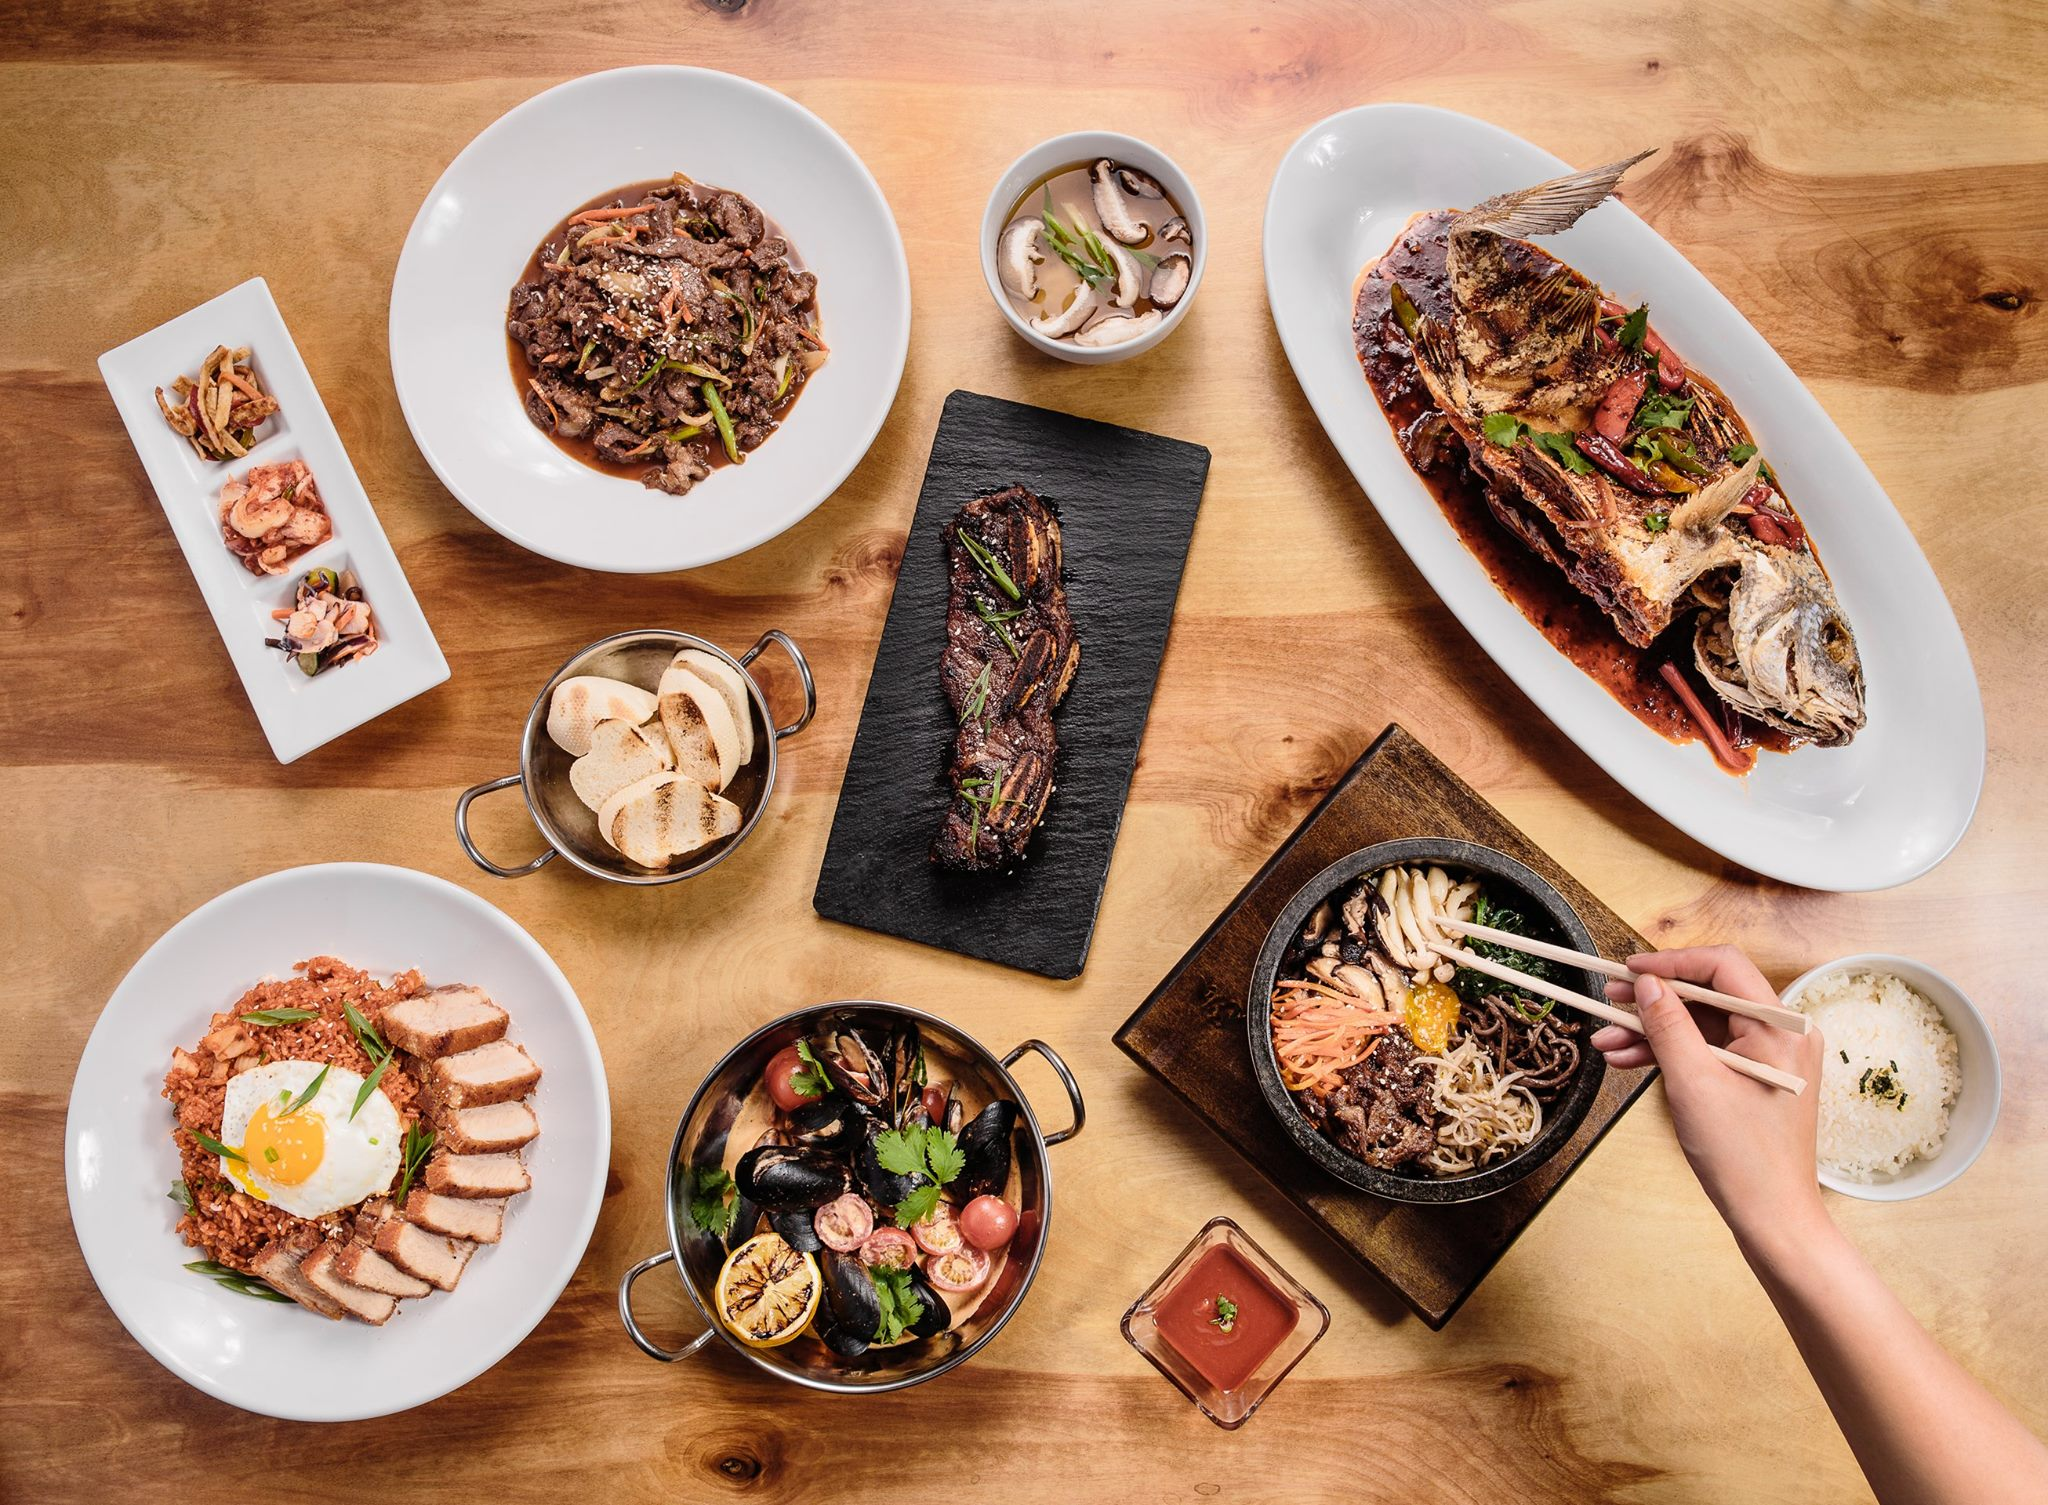 Where to eat Korean food in Austin